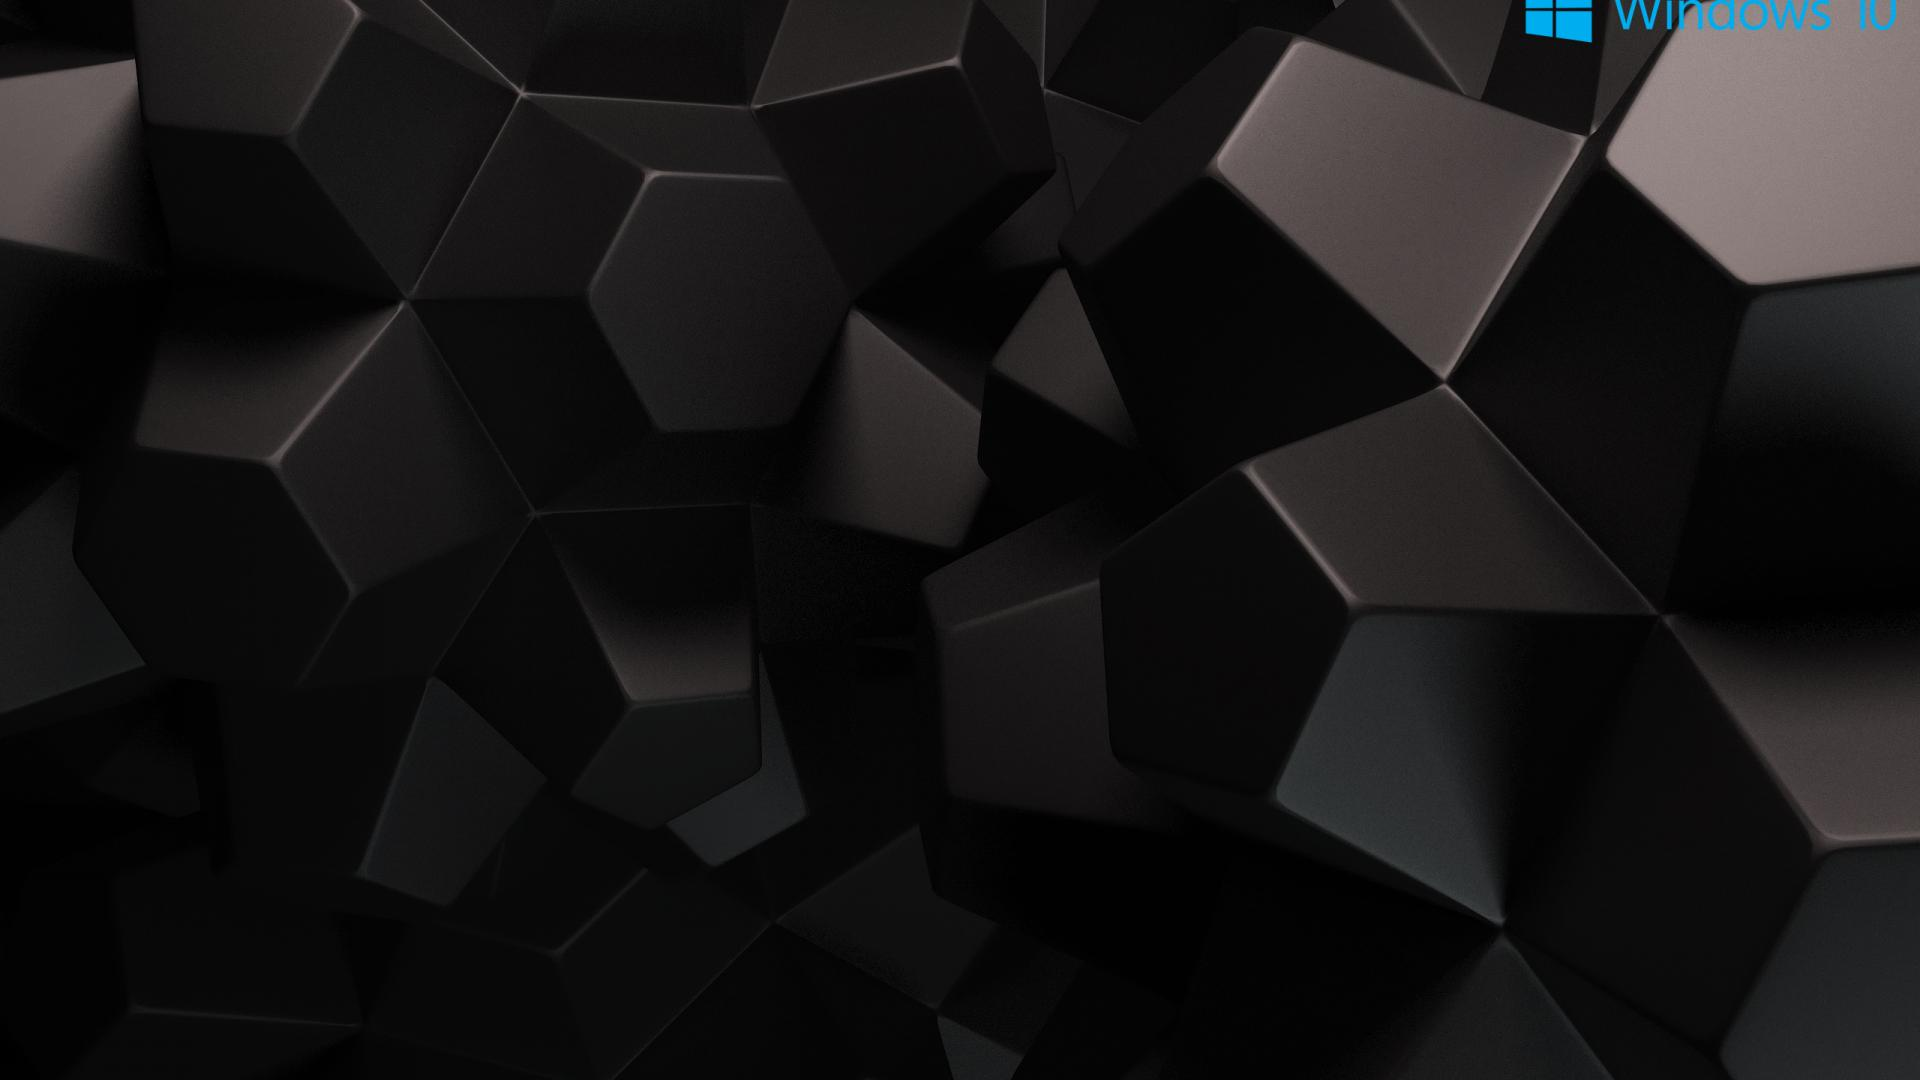 Windows 10 Wallpaper Black With 3d Object Hd Wallpapers